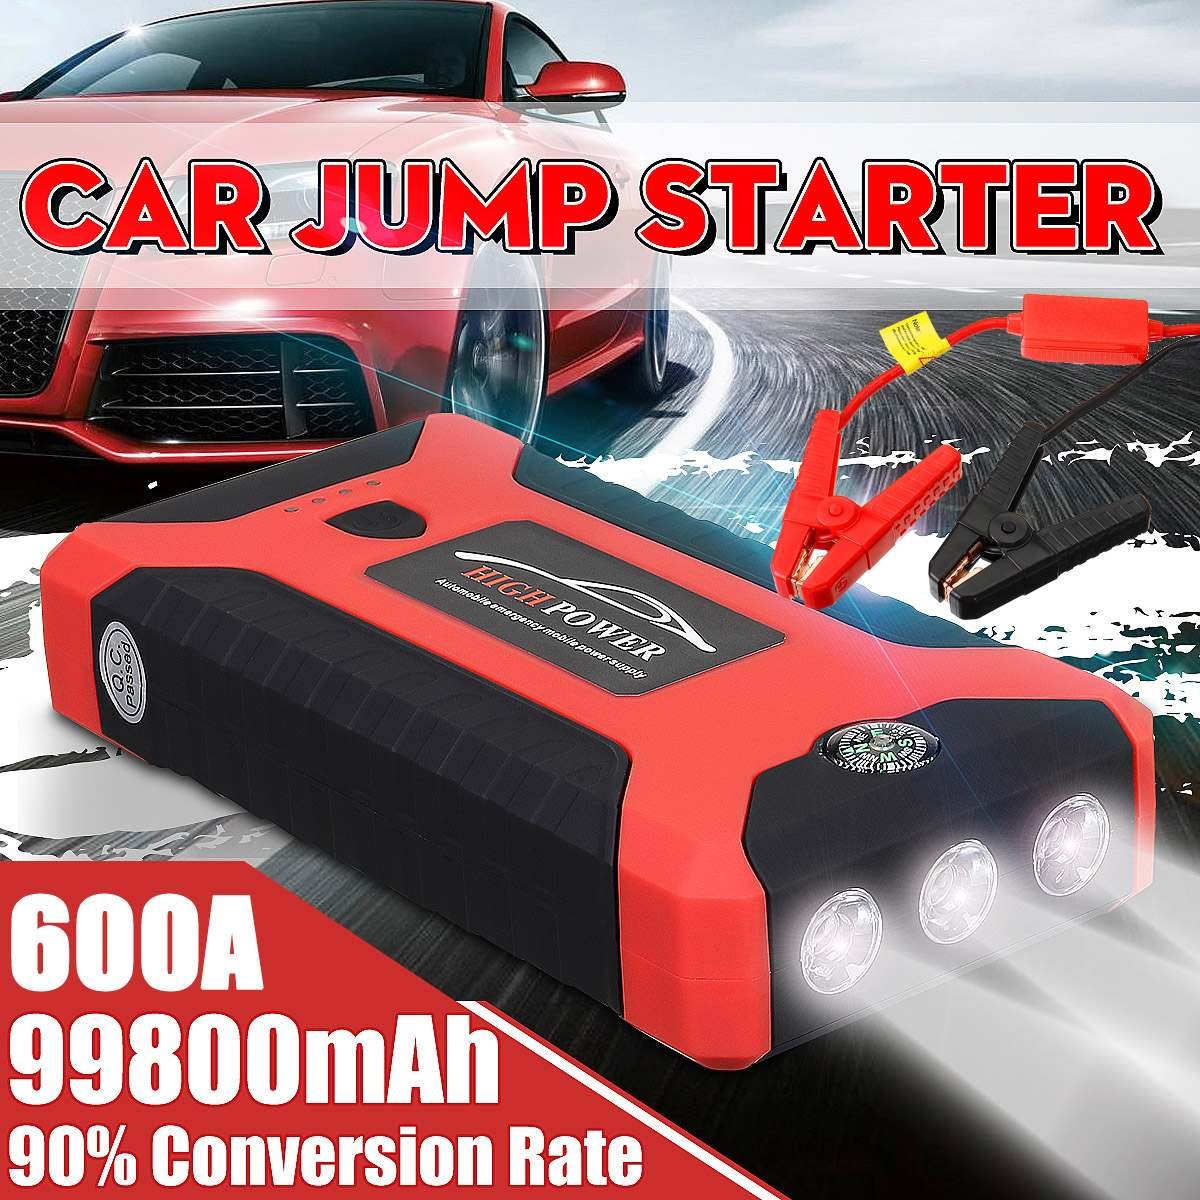 Multifunction 99800mAh 600A <font><b>Car</b></font> <font><b>Jump</b></font> <font><b>Starter</b></font> Portable Lighter 4 USB Power Bank <font><b>Car</b></font> <font><b>Battery</b></font> Booster <font><b>Charger</b></font> Starting Device image